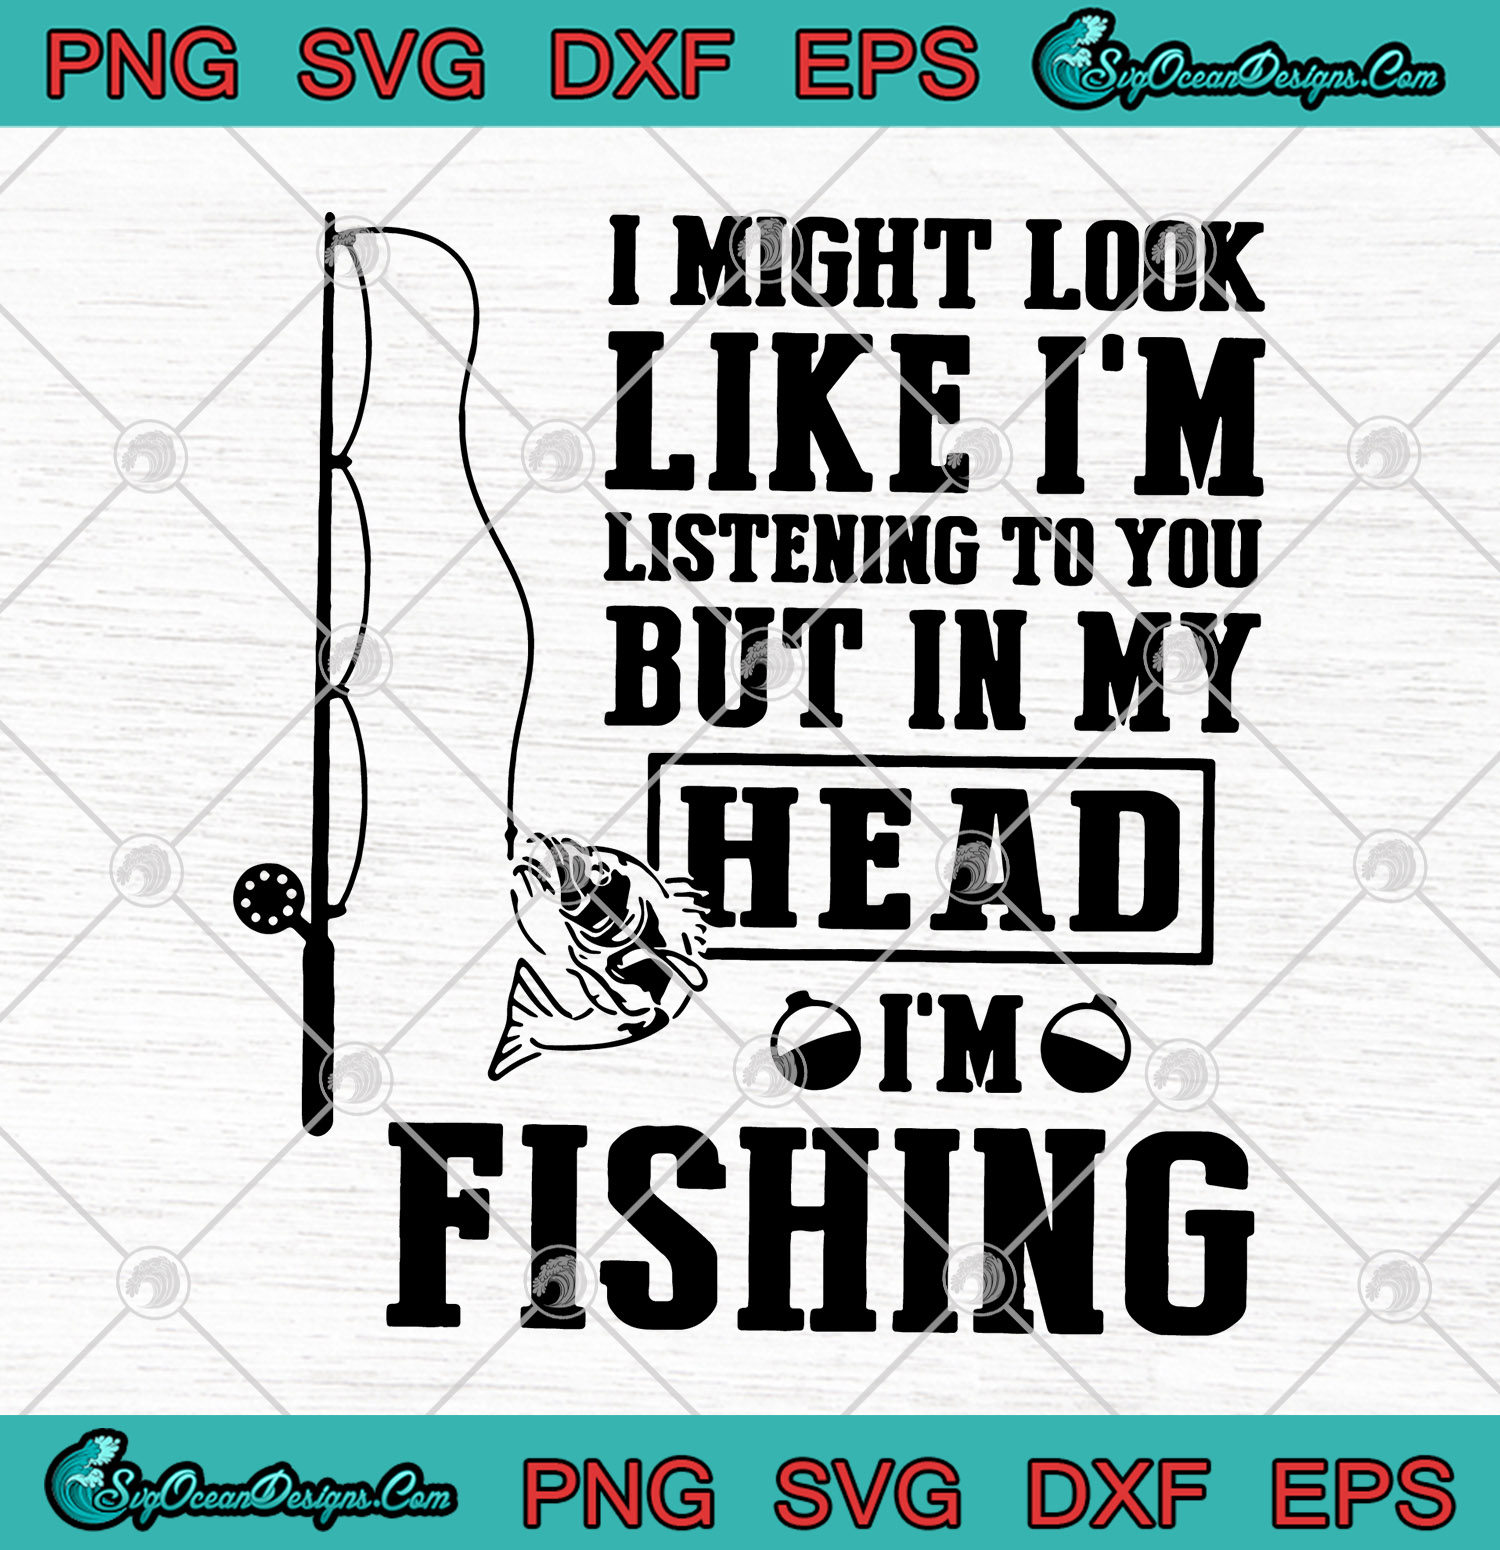 Download I Might Look Like I M Listening To You But In My Head I M Fishing Svg Png Eps Dxf Fishing Cutting File Cricut Silhouette Art Svg Png Eps Dxf Cricut Silhouette